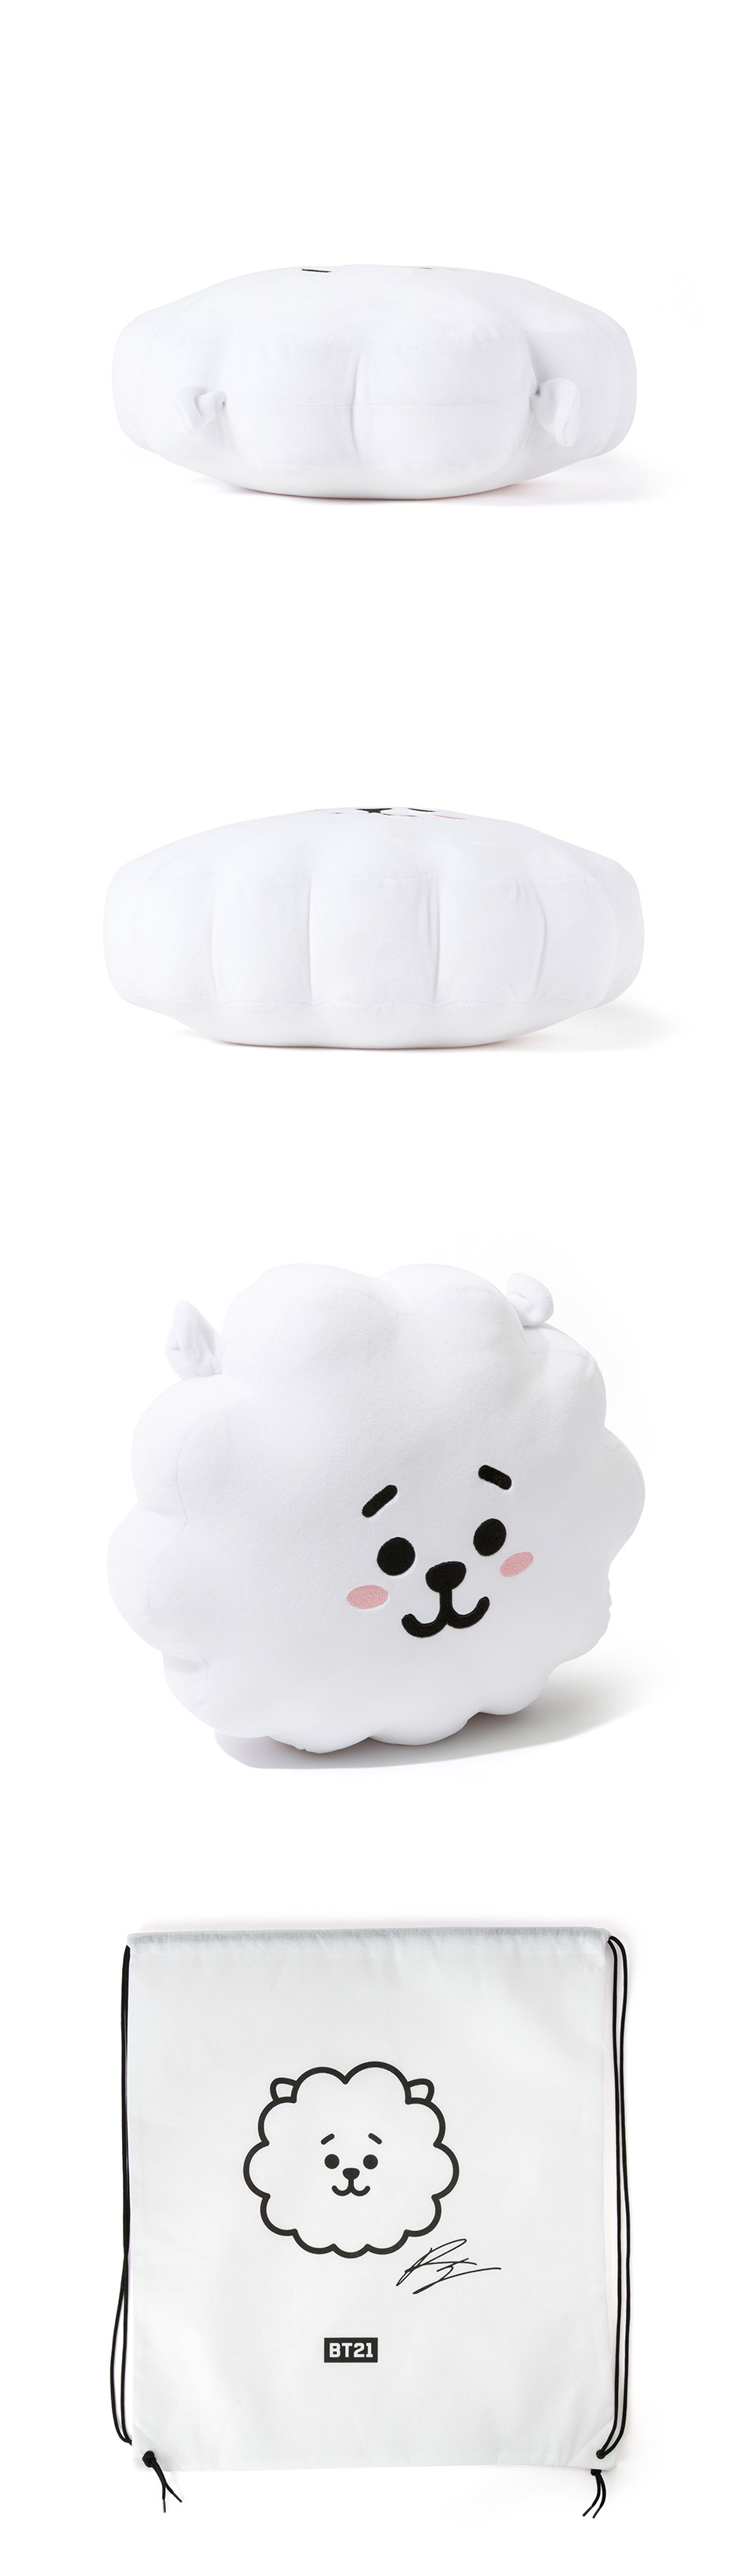 bt21_cushion_30cm_02.jpg